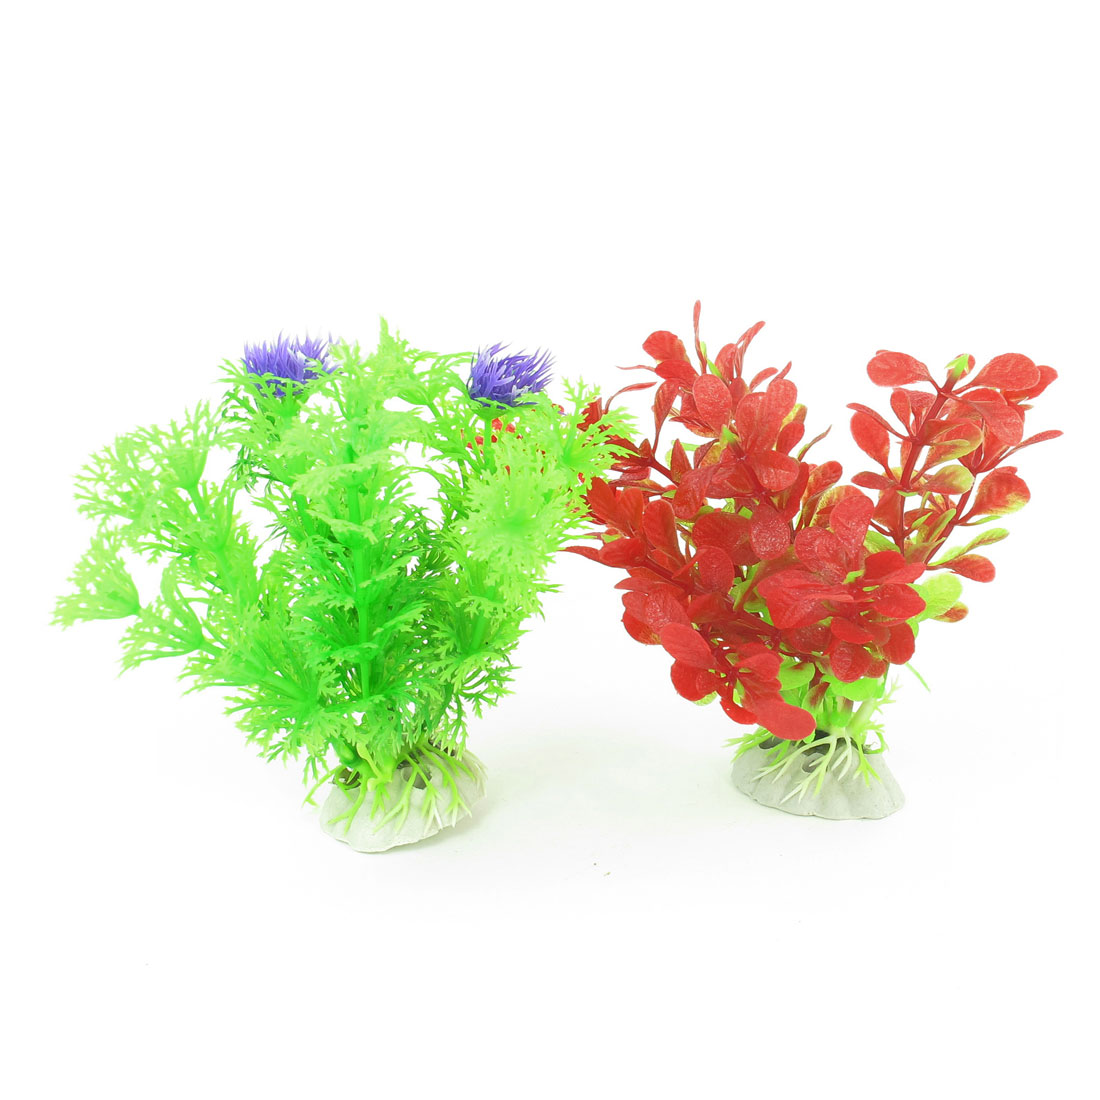 "2 Pcs Red Green Emulational Fish Tank Aquarium Grasses Decor 4.3"" High"